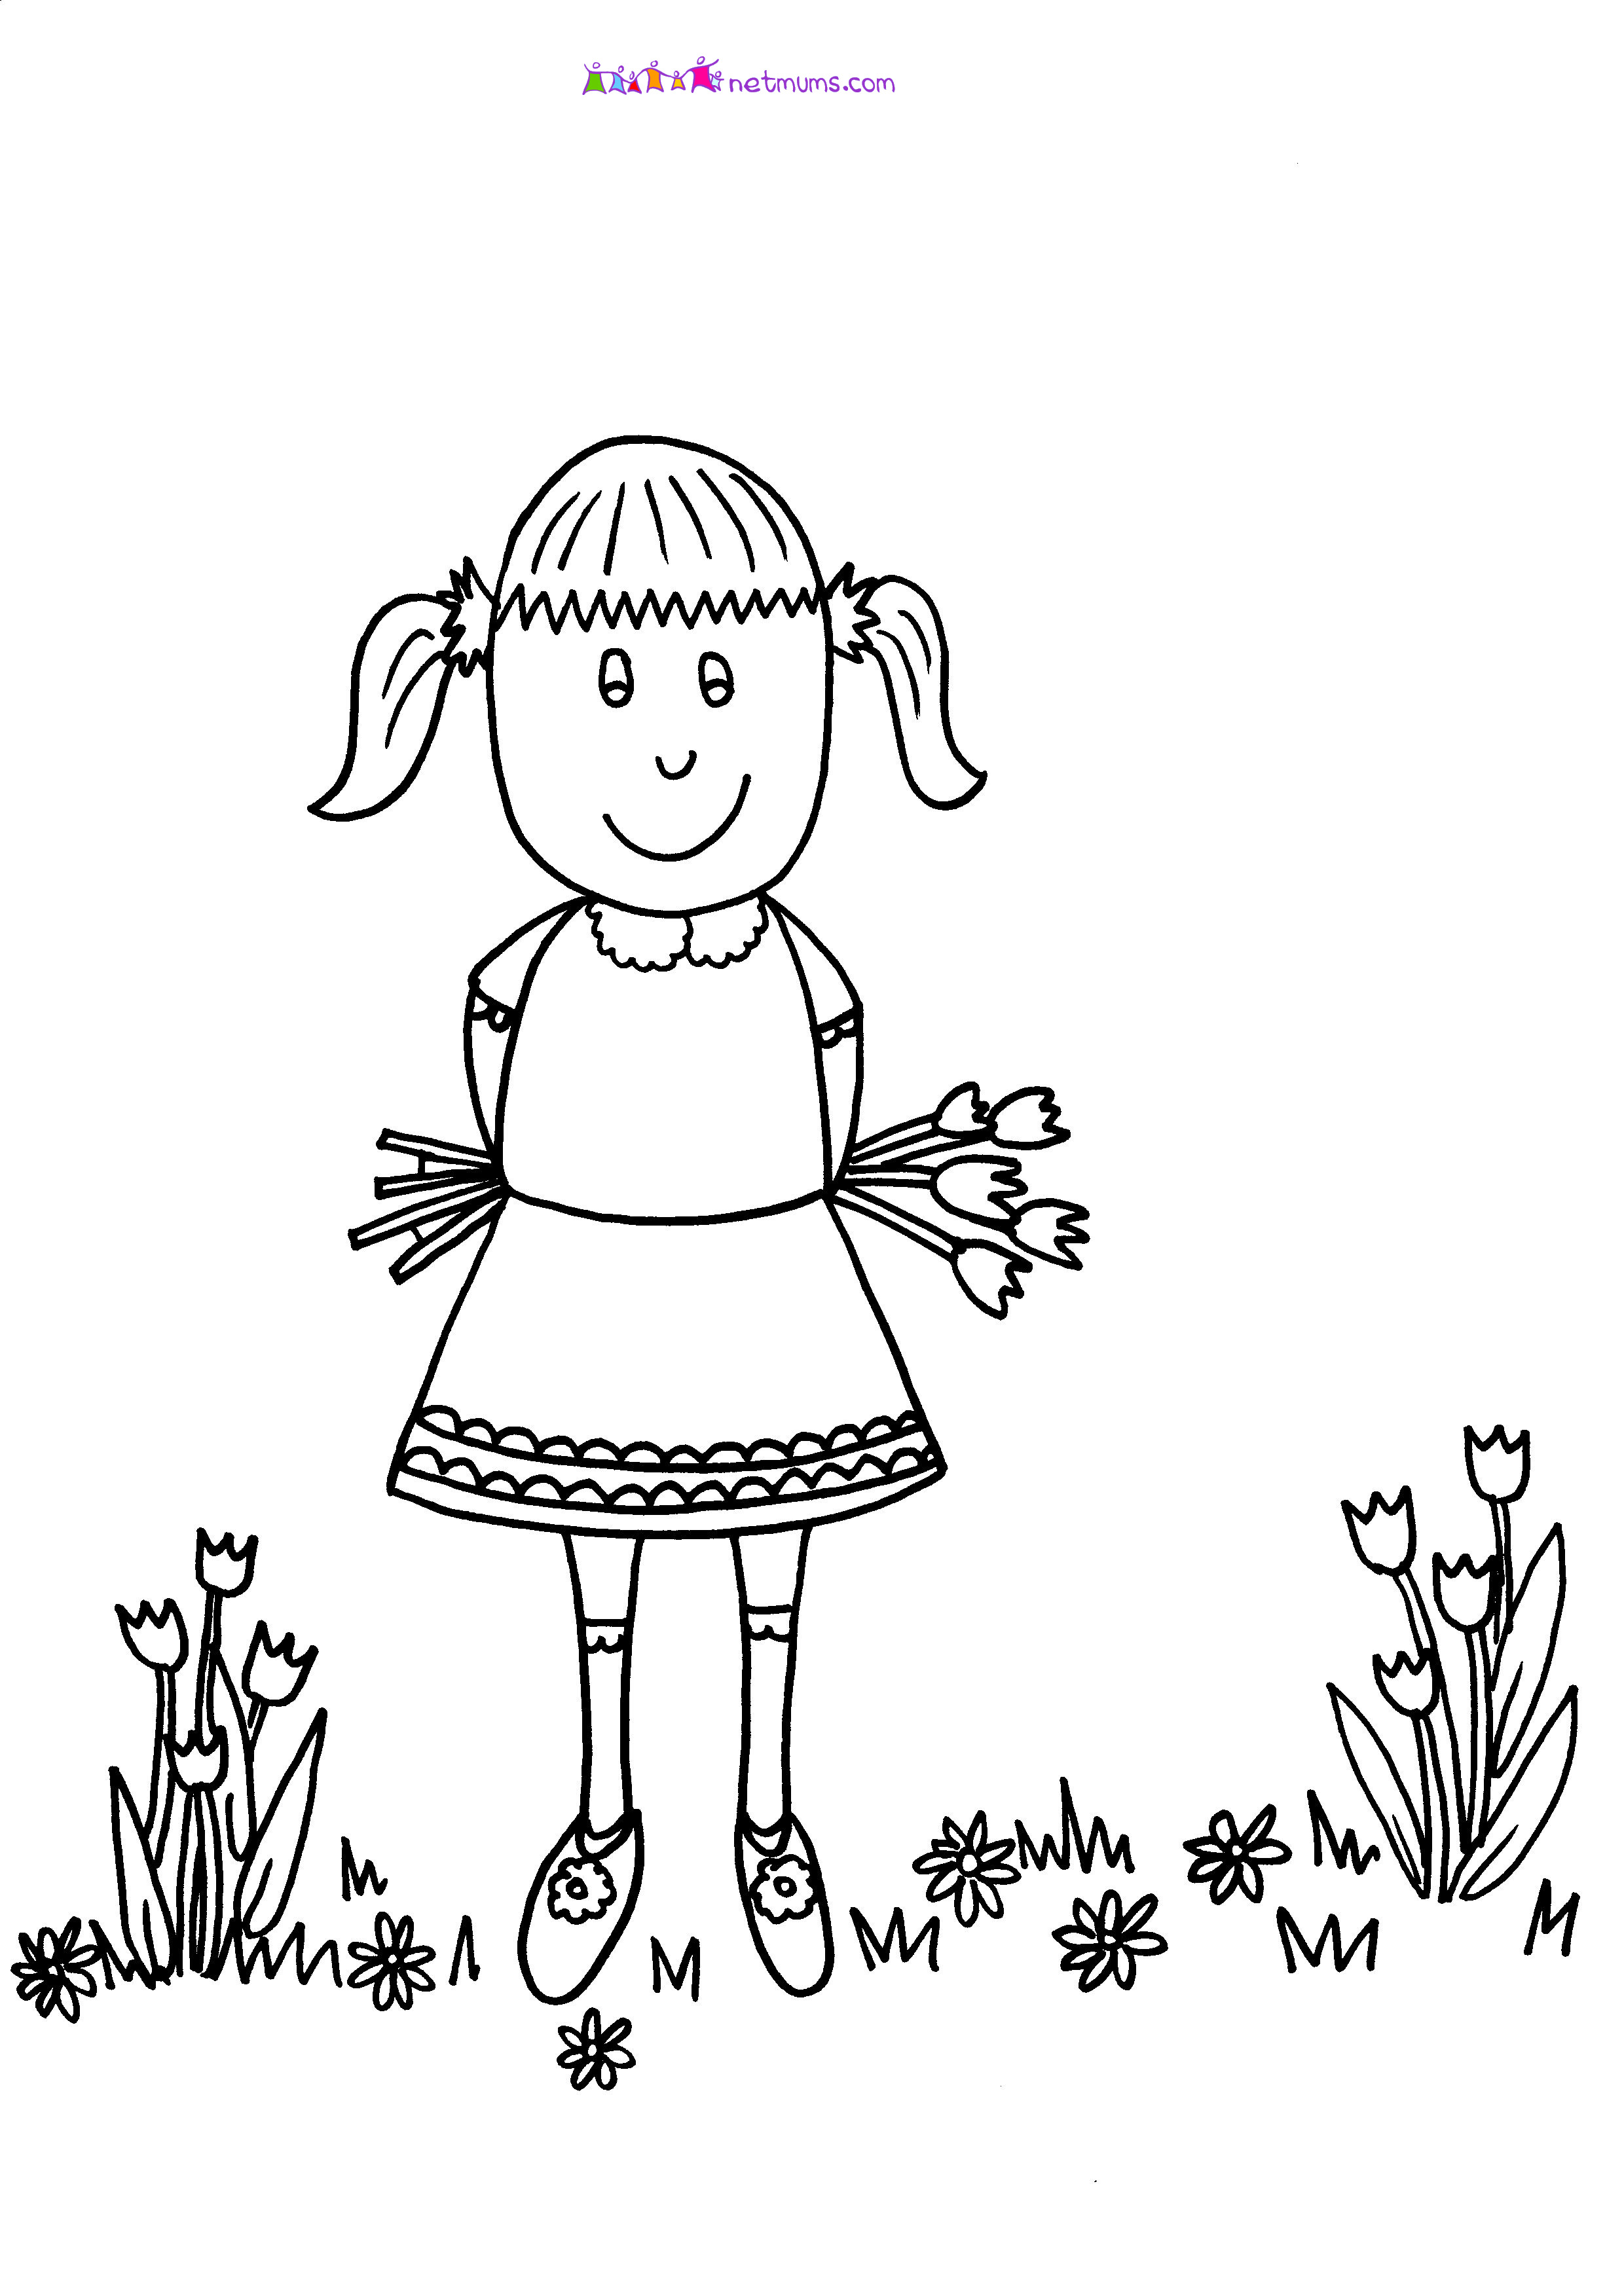 need childrens coloring pages - photo#11